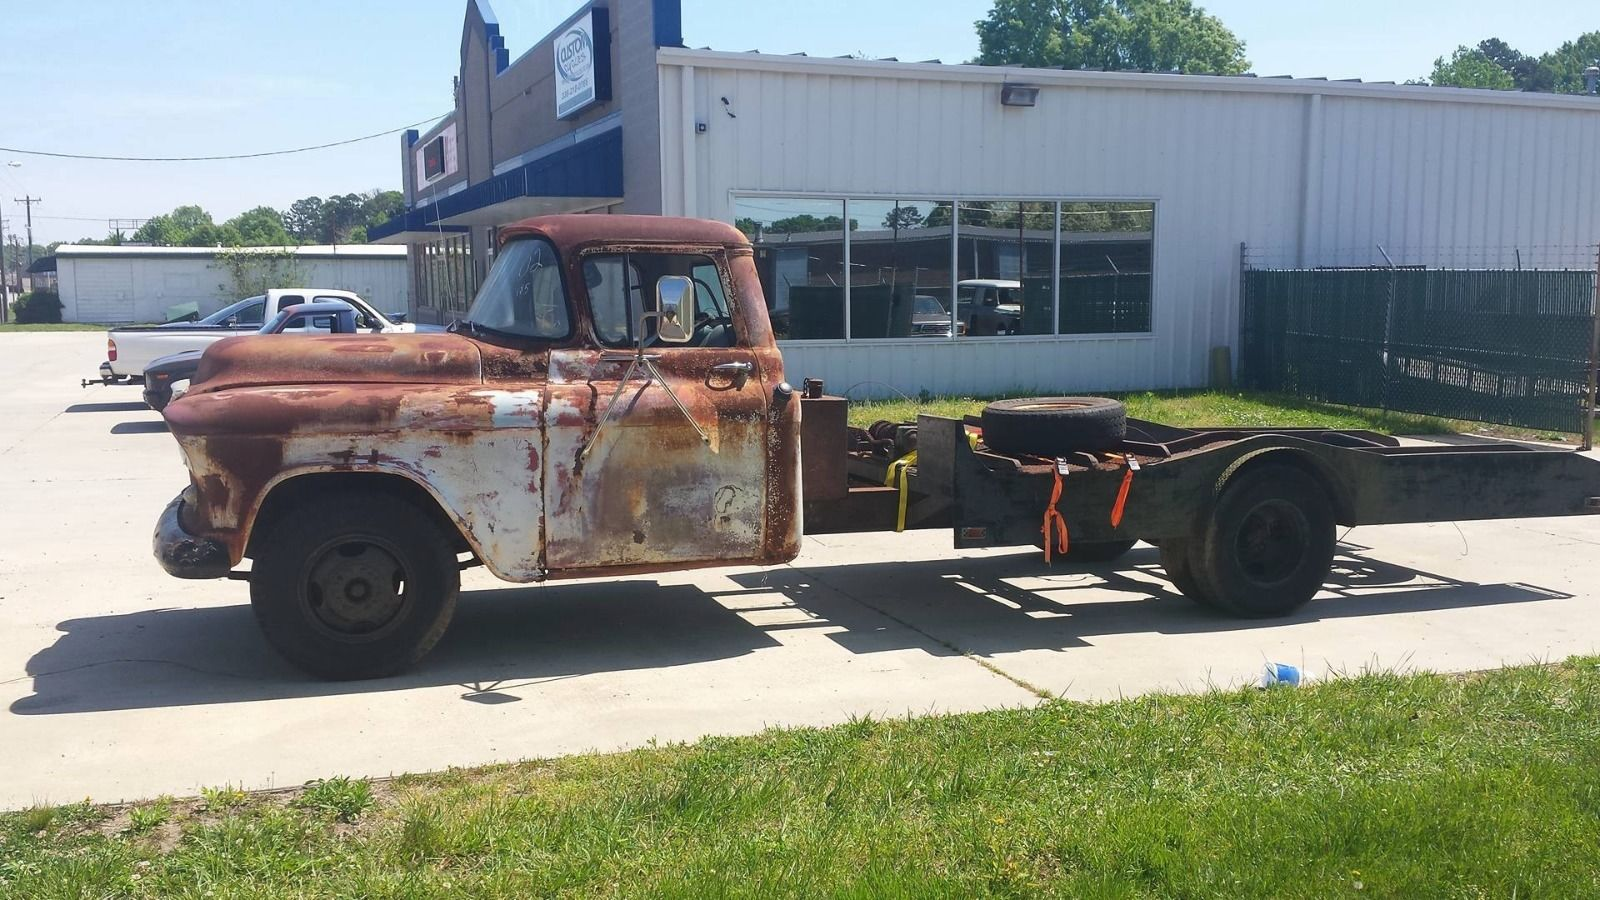 Chevy Vintage Hauler With A Great Potential As Your Next Hot Rod Rat Rod Project For Sale on Custom 1970 Chevy Pickup Truck